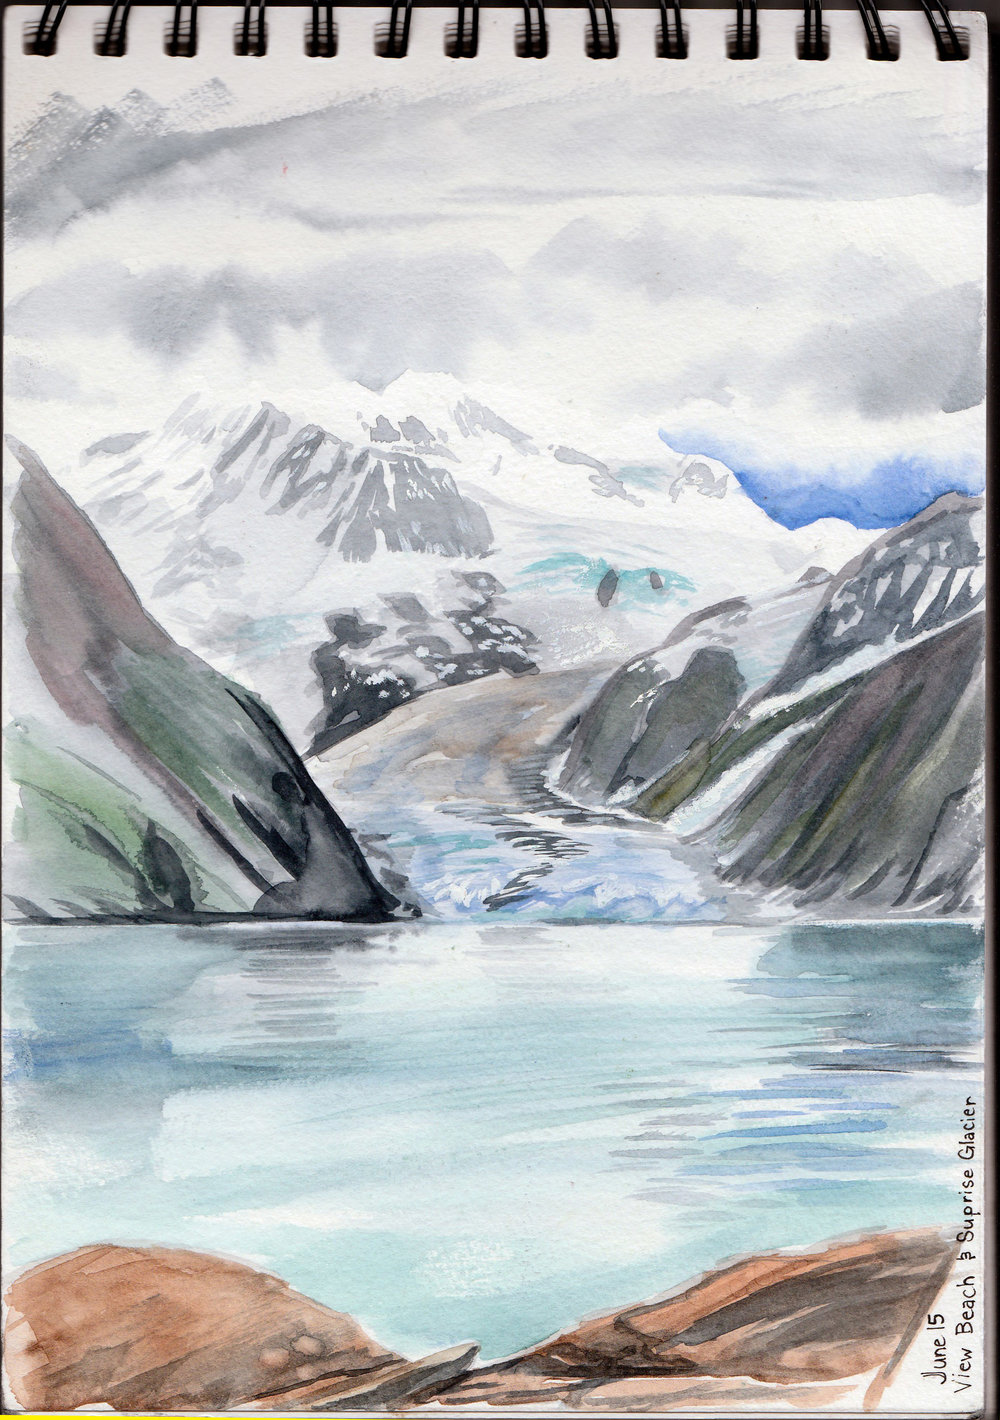 """View Beach across to Surprise Glacier. The fjord was like glass and the silence was incredible. If we could have stayed out for another few days, I don't think I would have ever tired of seeing this. Watercolour. Co-ordinates: 61°02'08.9""""N 148°18'48.7""""W"""